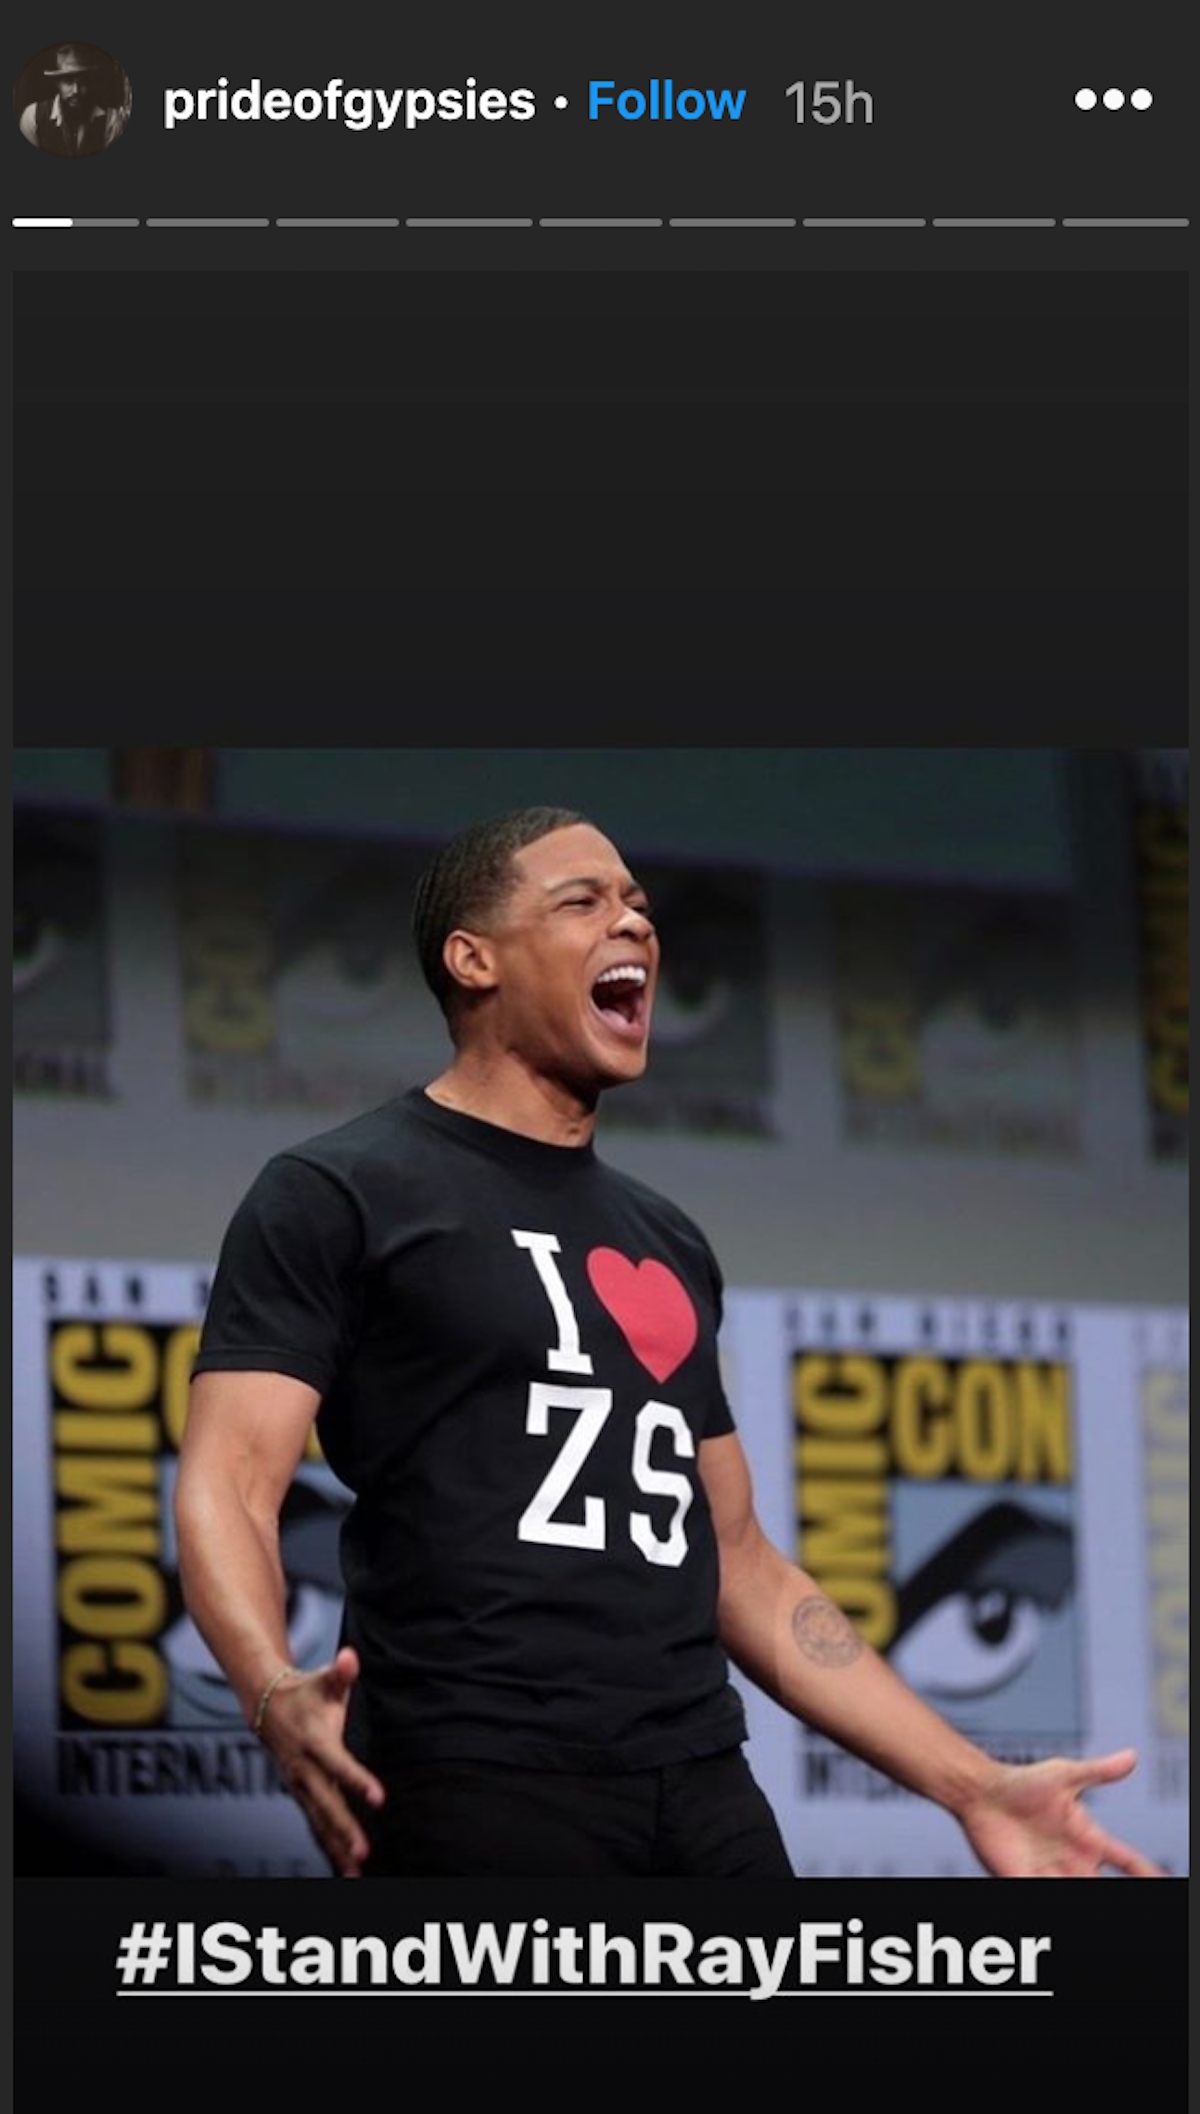 Jason Momoa Instagram post I Stand with Ray Fisher